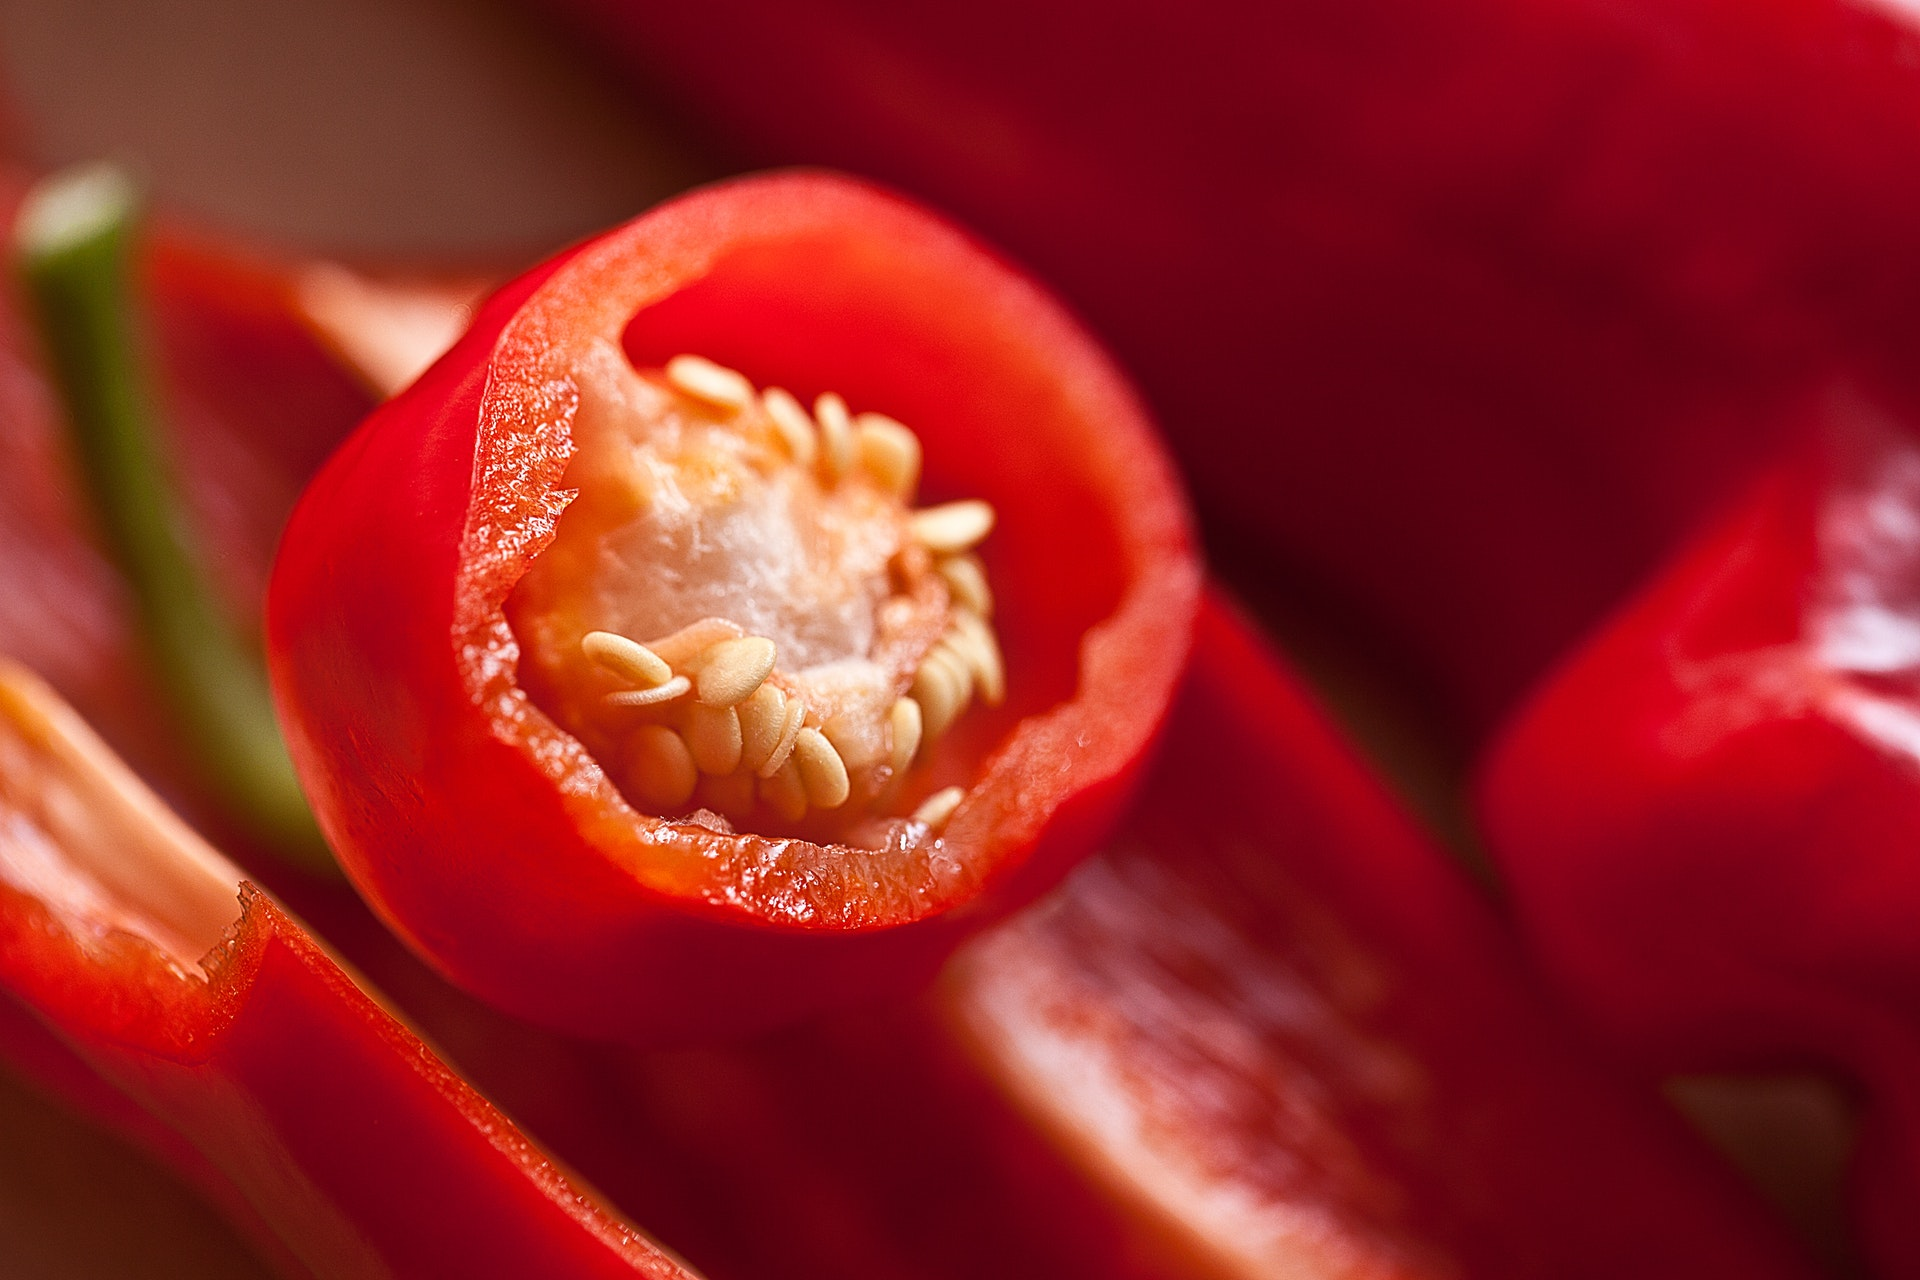 paprika-fruit-the-inside-of-the-peppers-the-grain-of-paprika.jpg